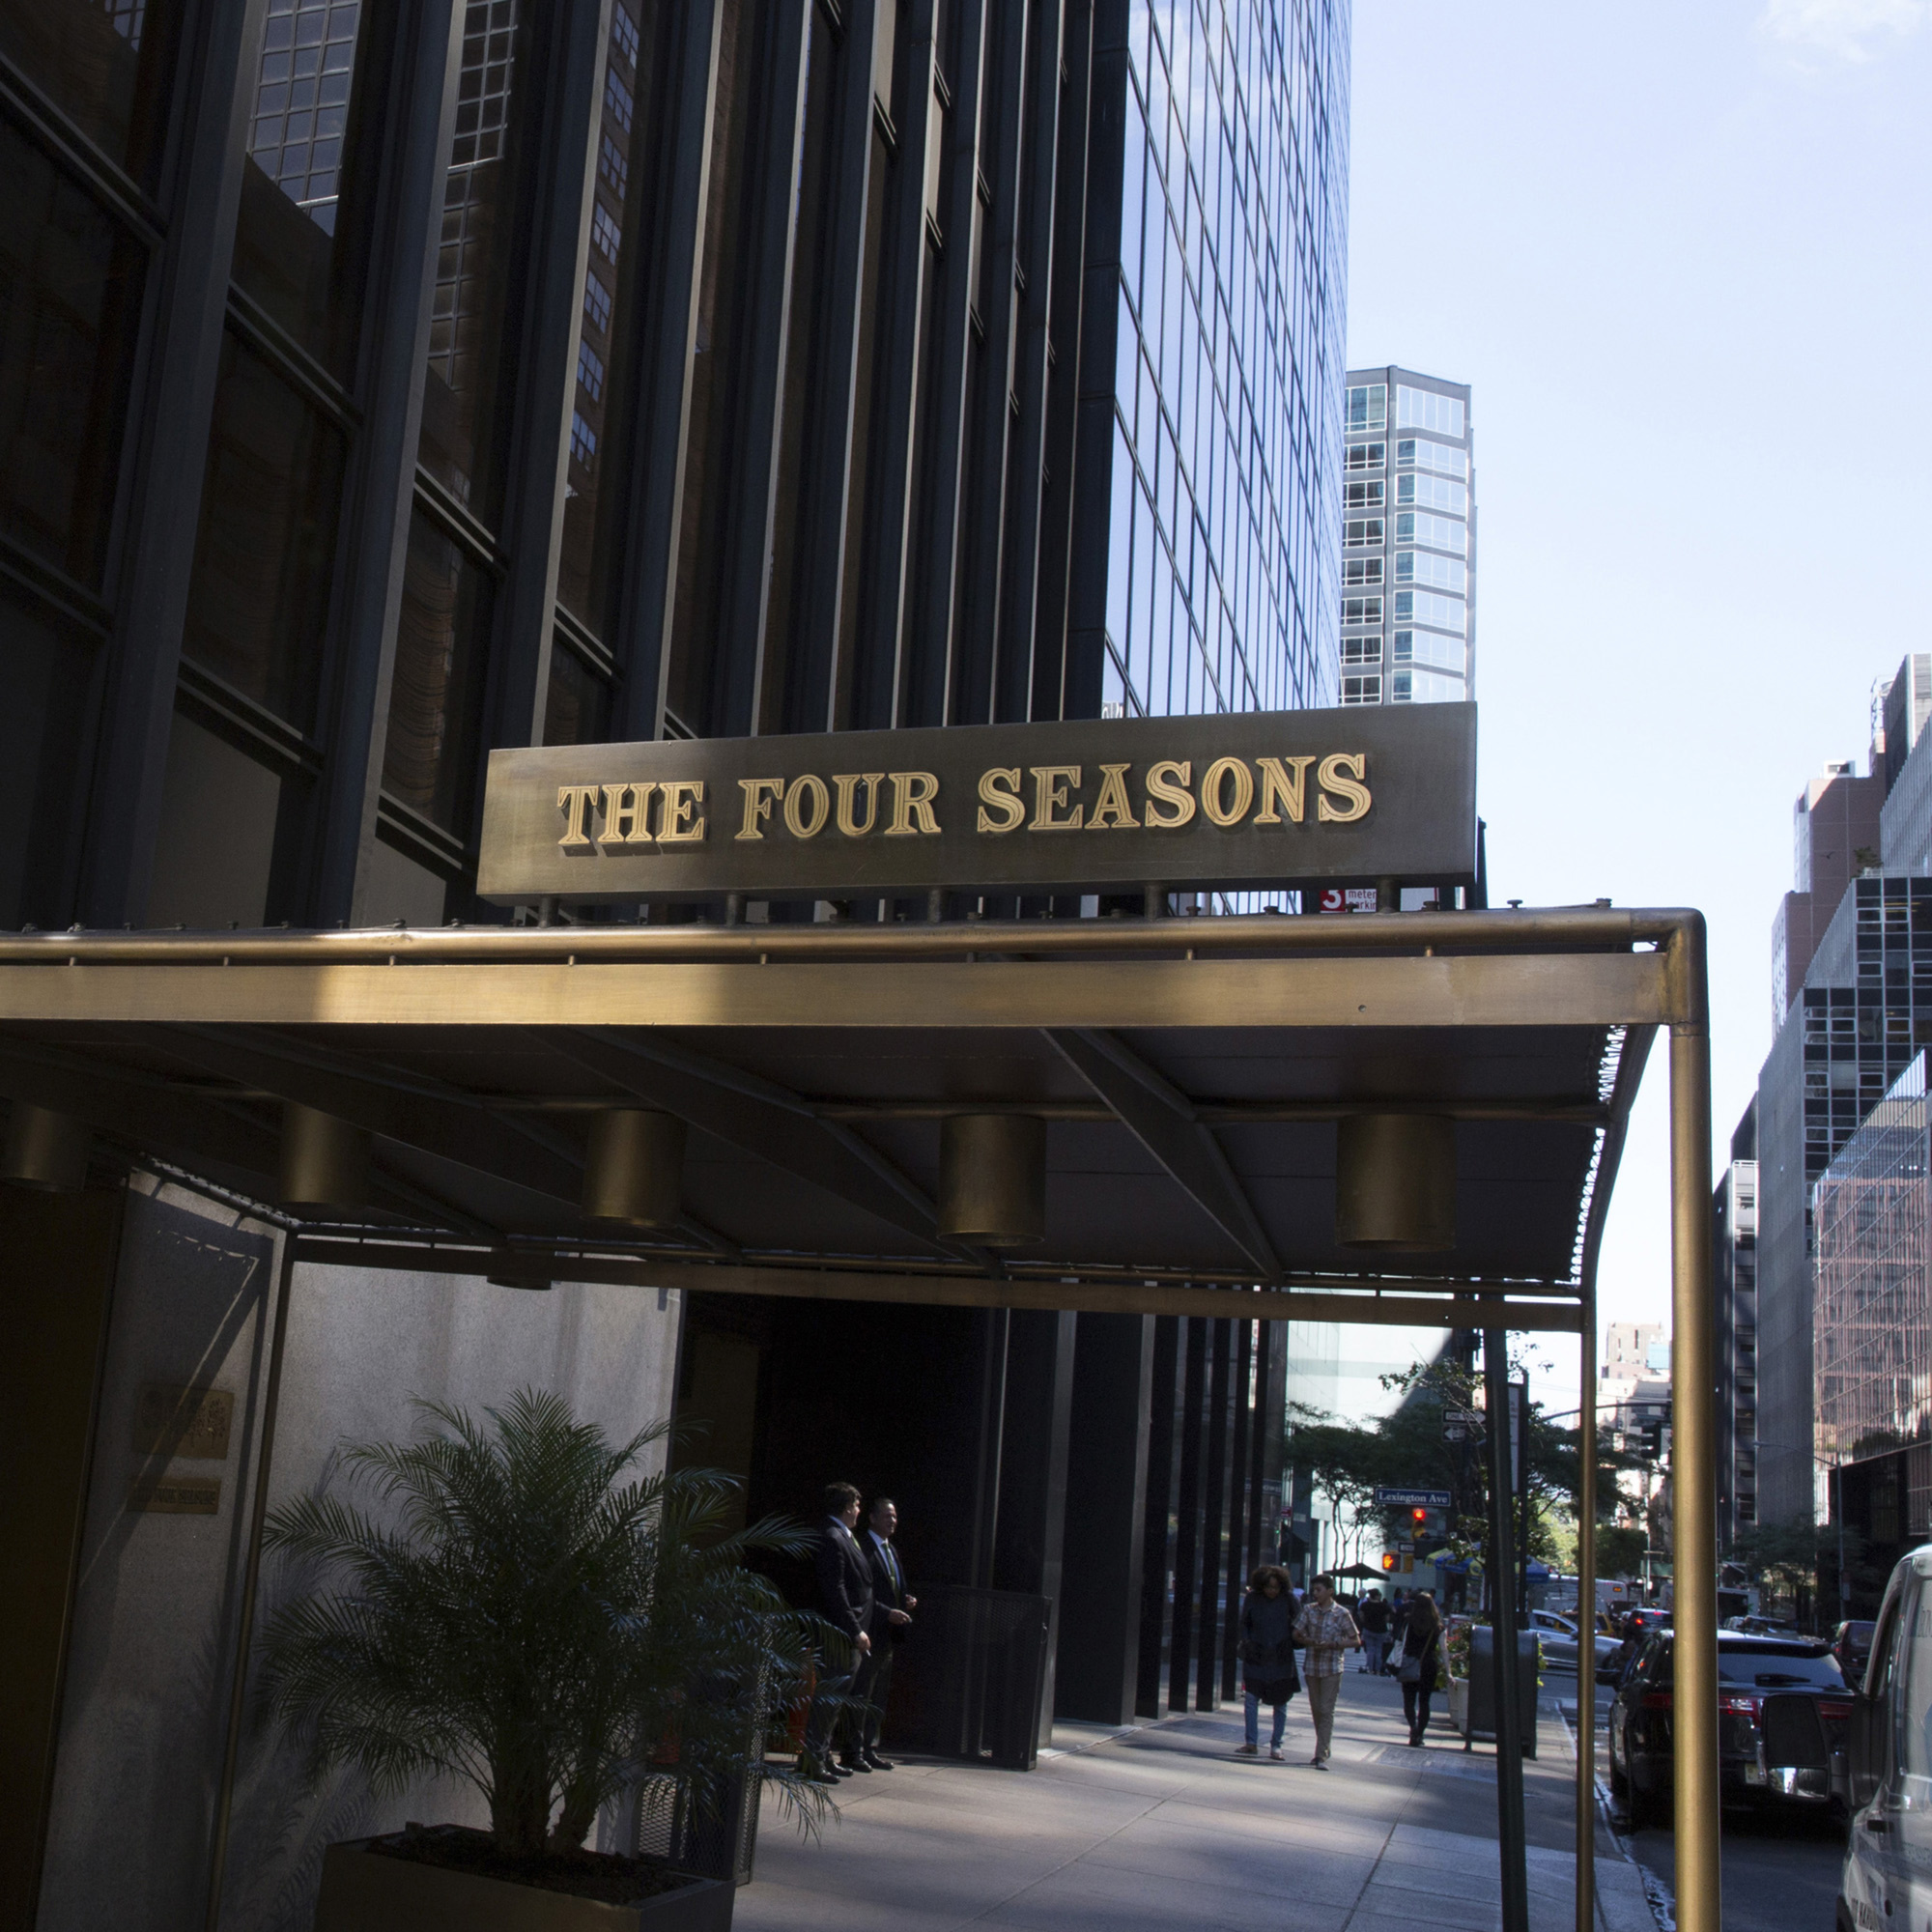 114: Emil Antonucci / The Four Seasons illuminated sign from the entrance awning (1 of 1)